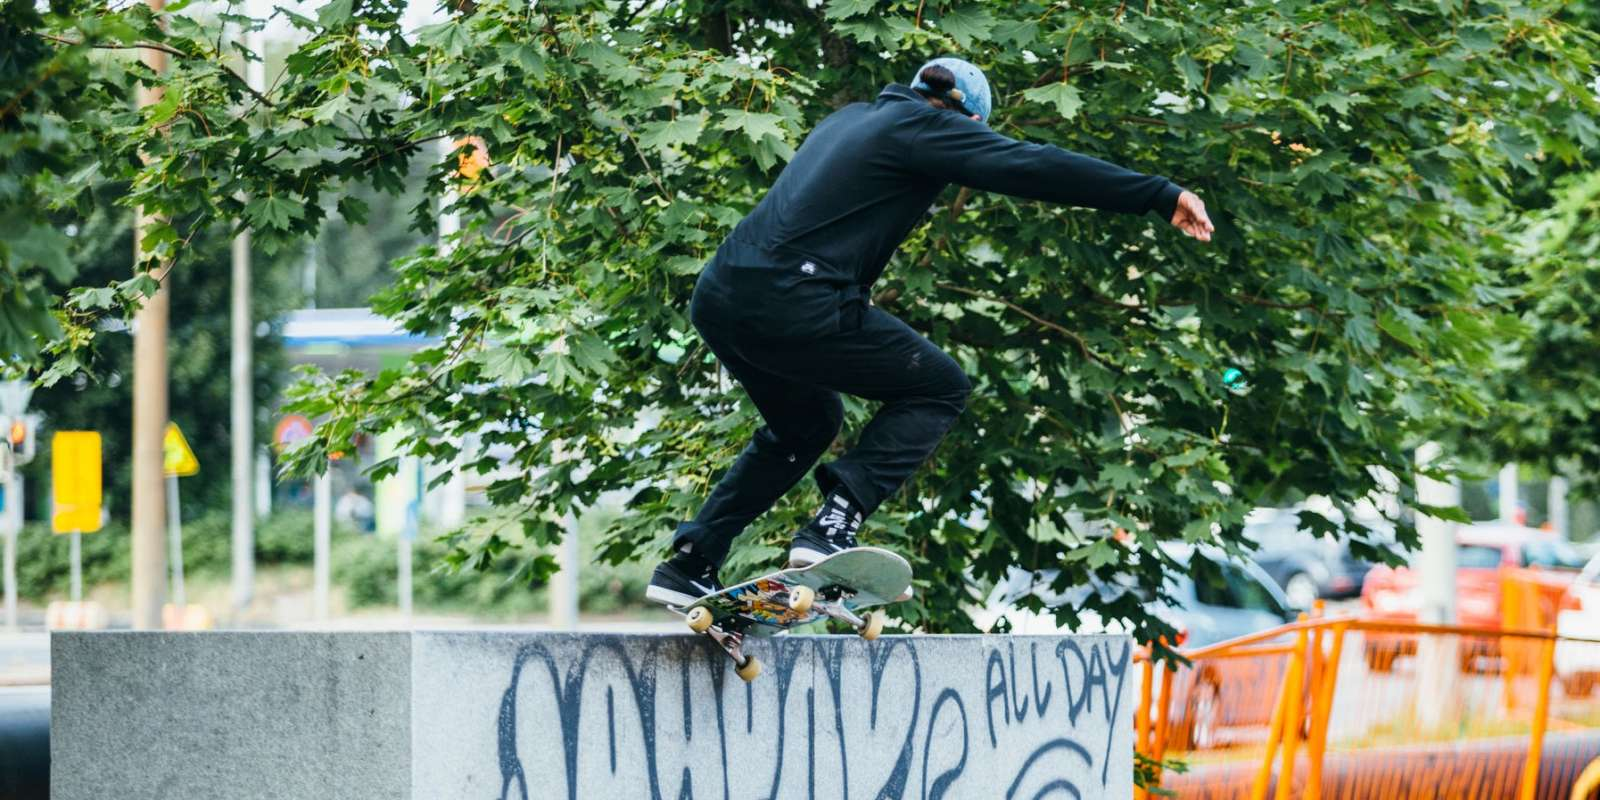 Shot from Day One at Helride in Helsinki, Finland.